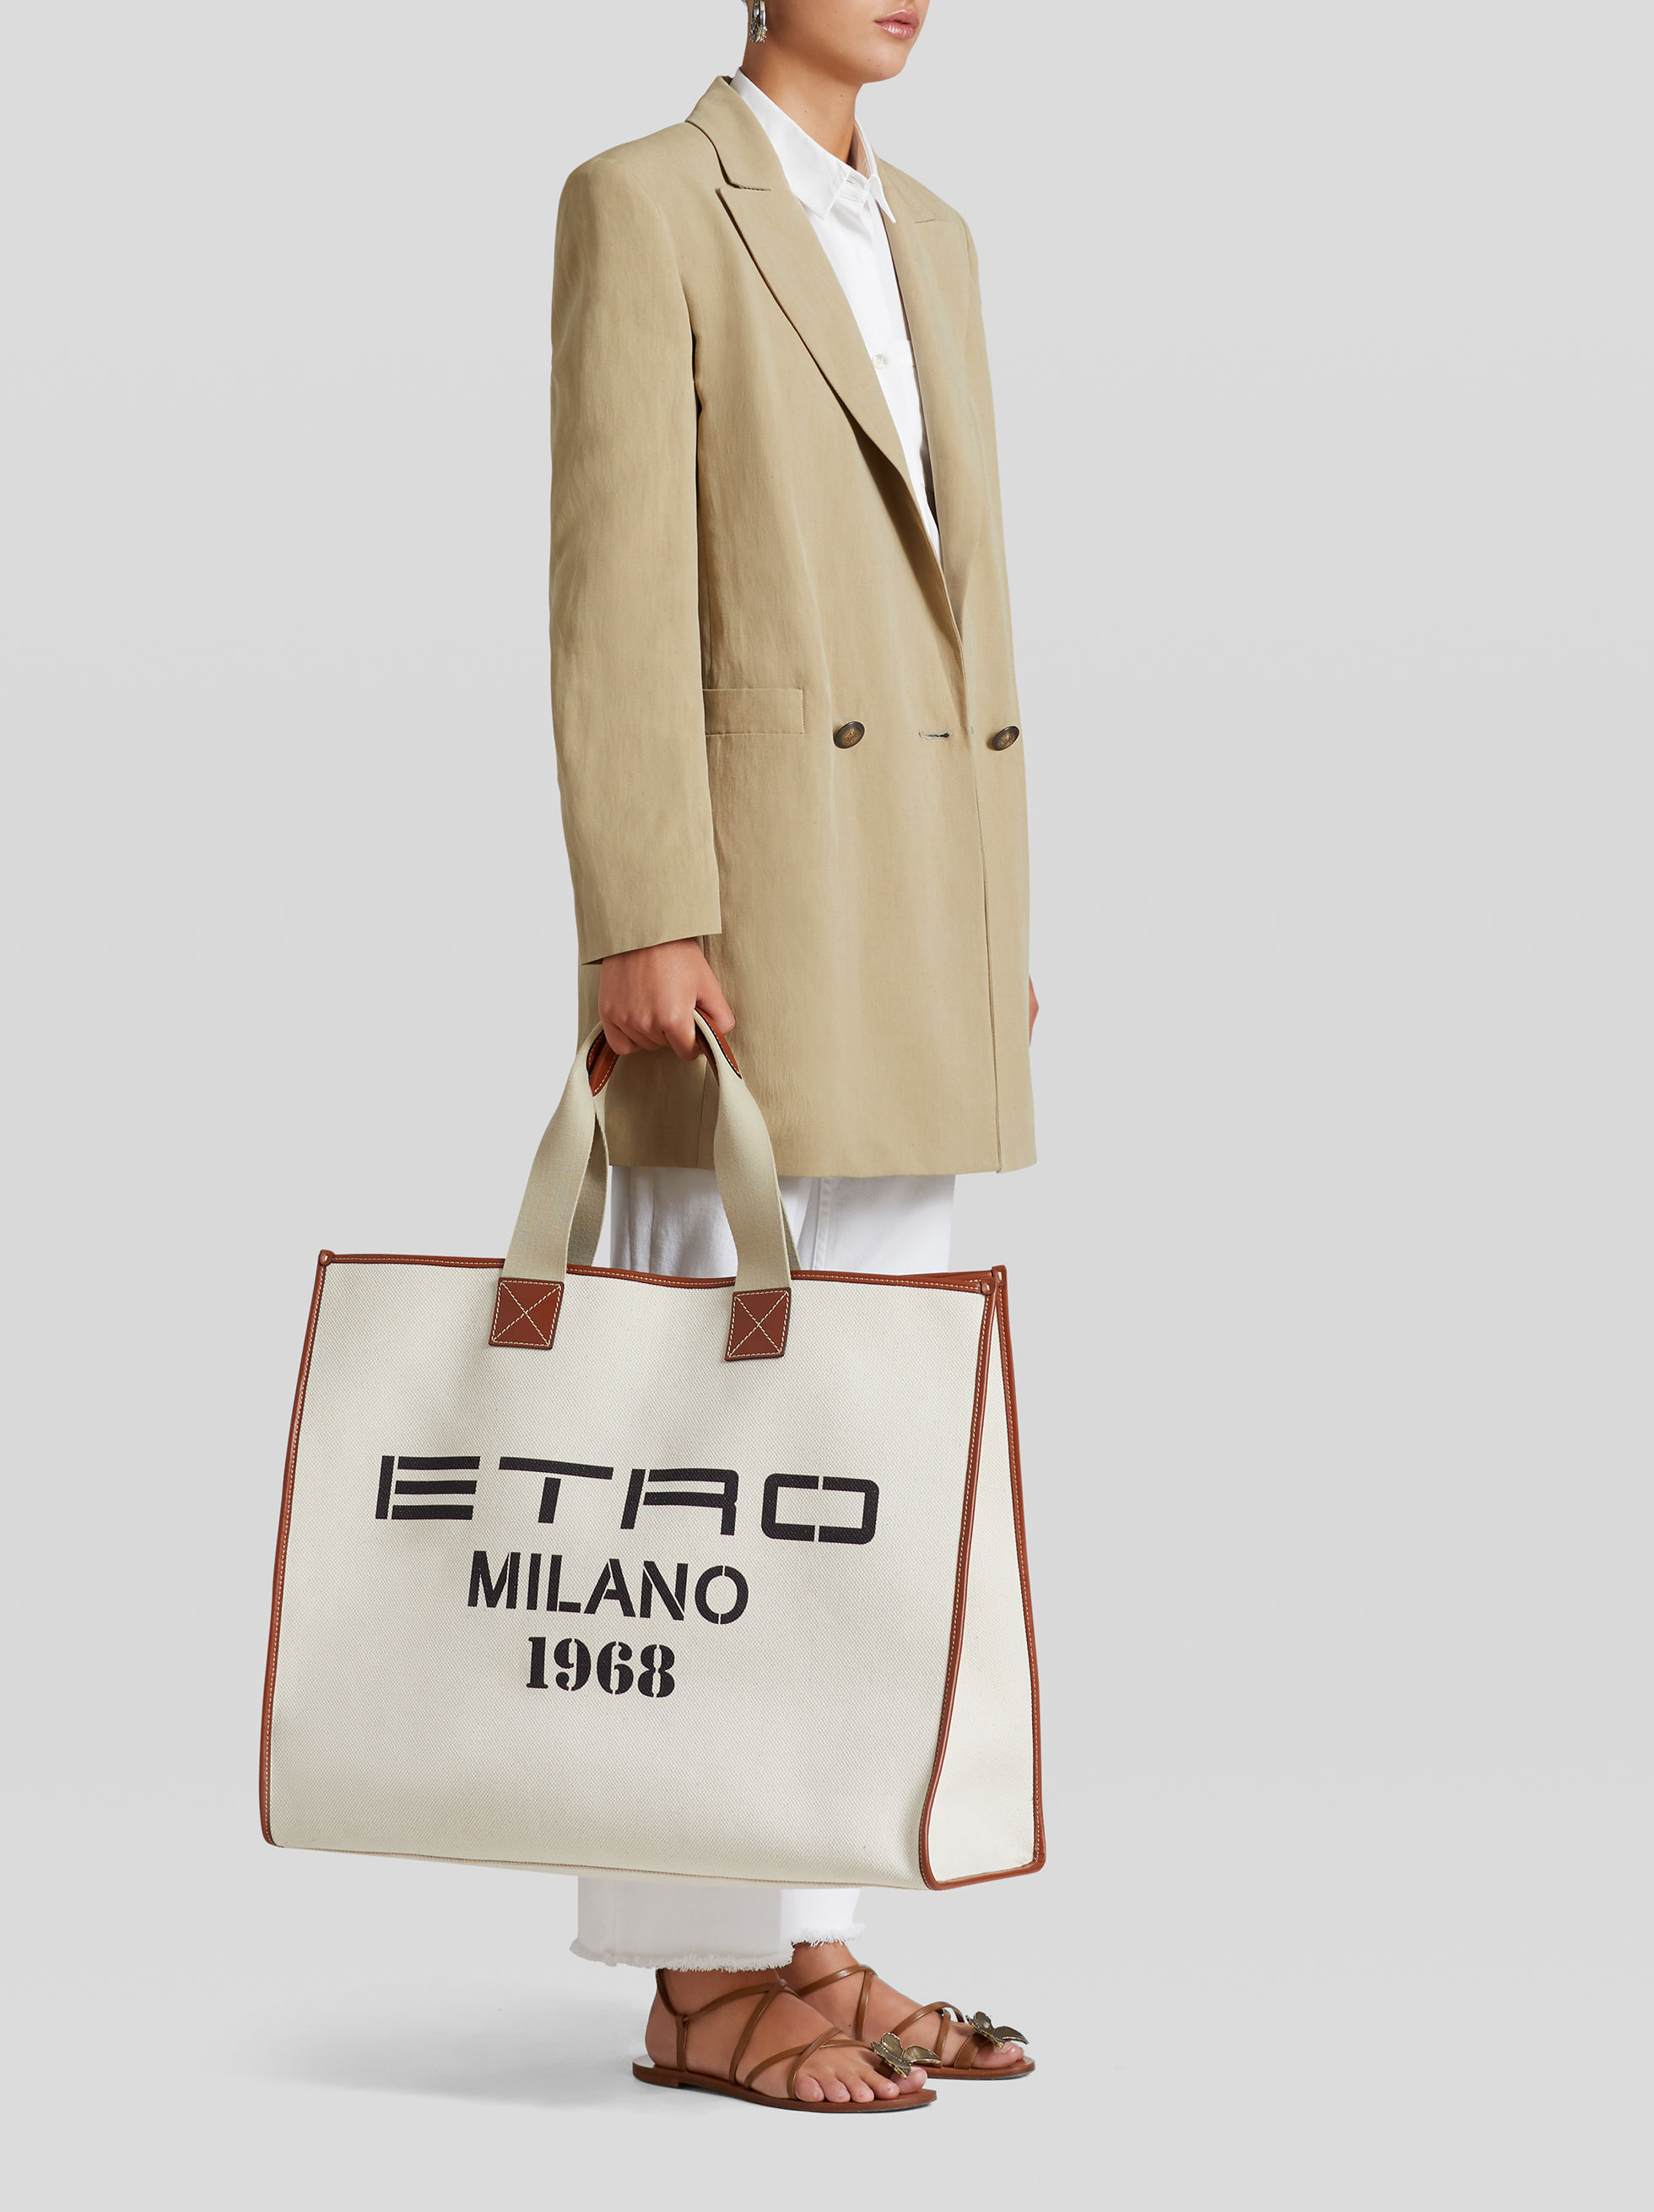 ETRO MILANO 1968' SHOPPING BAG